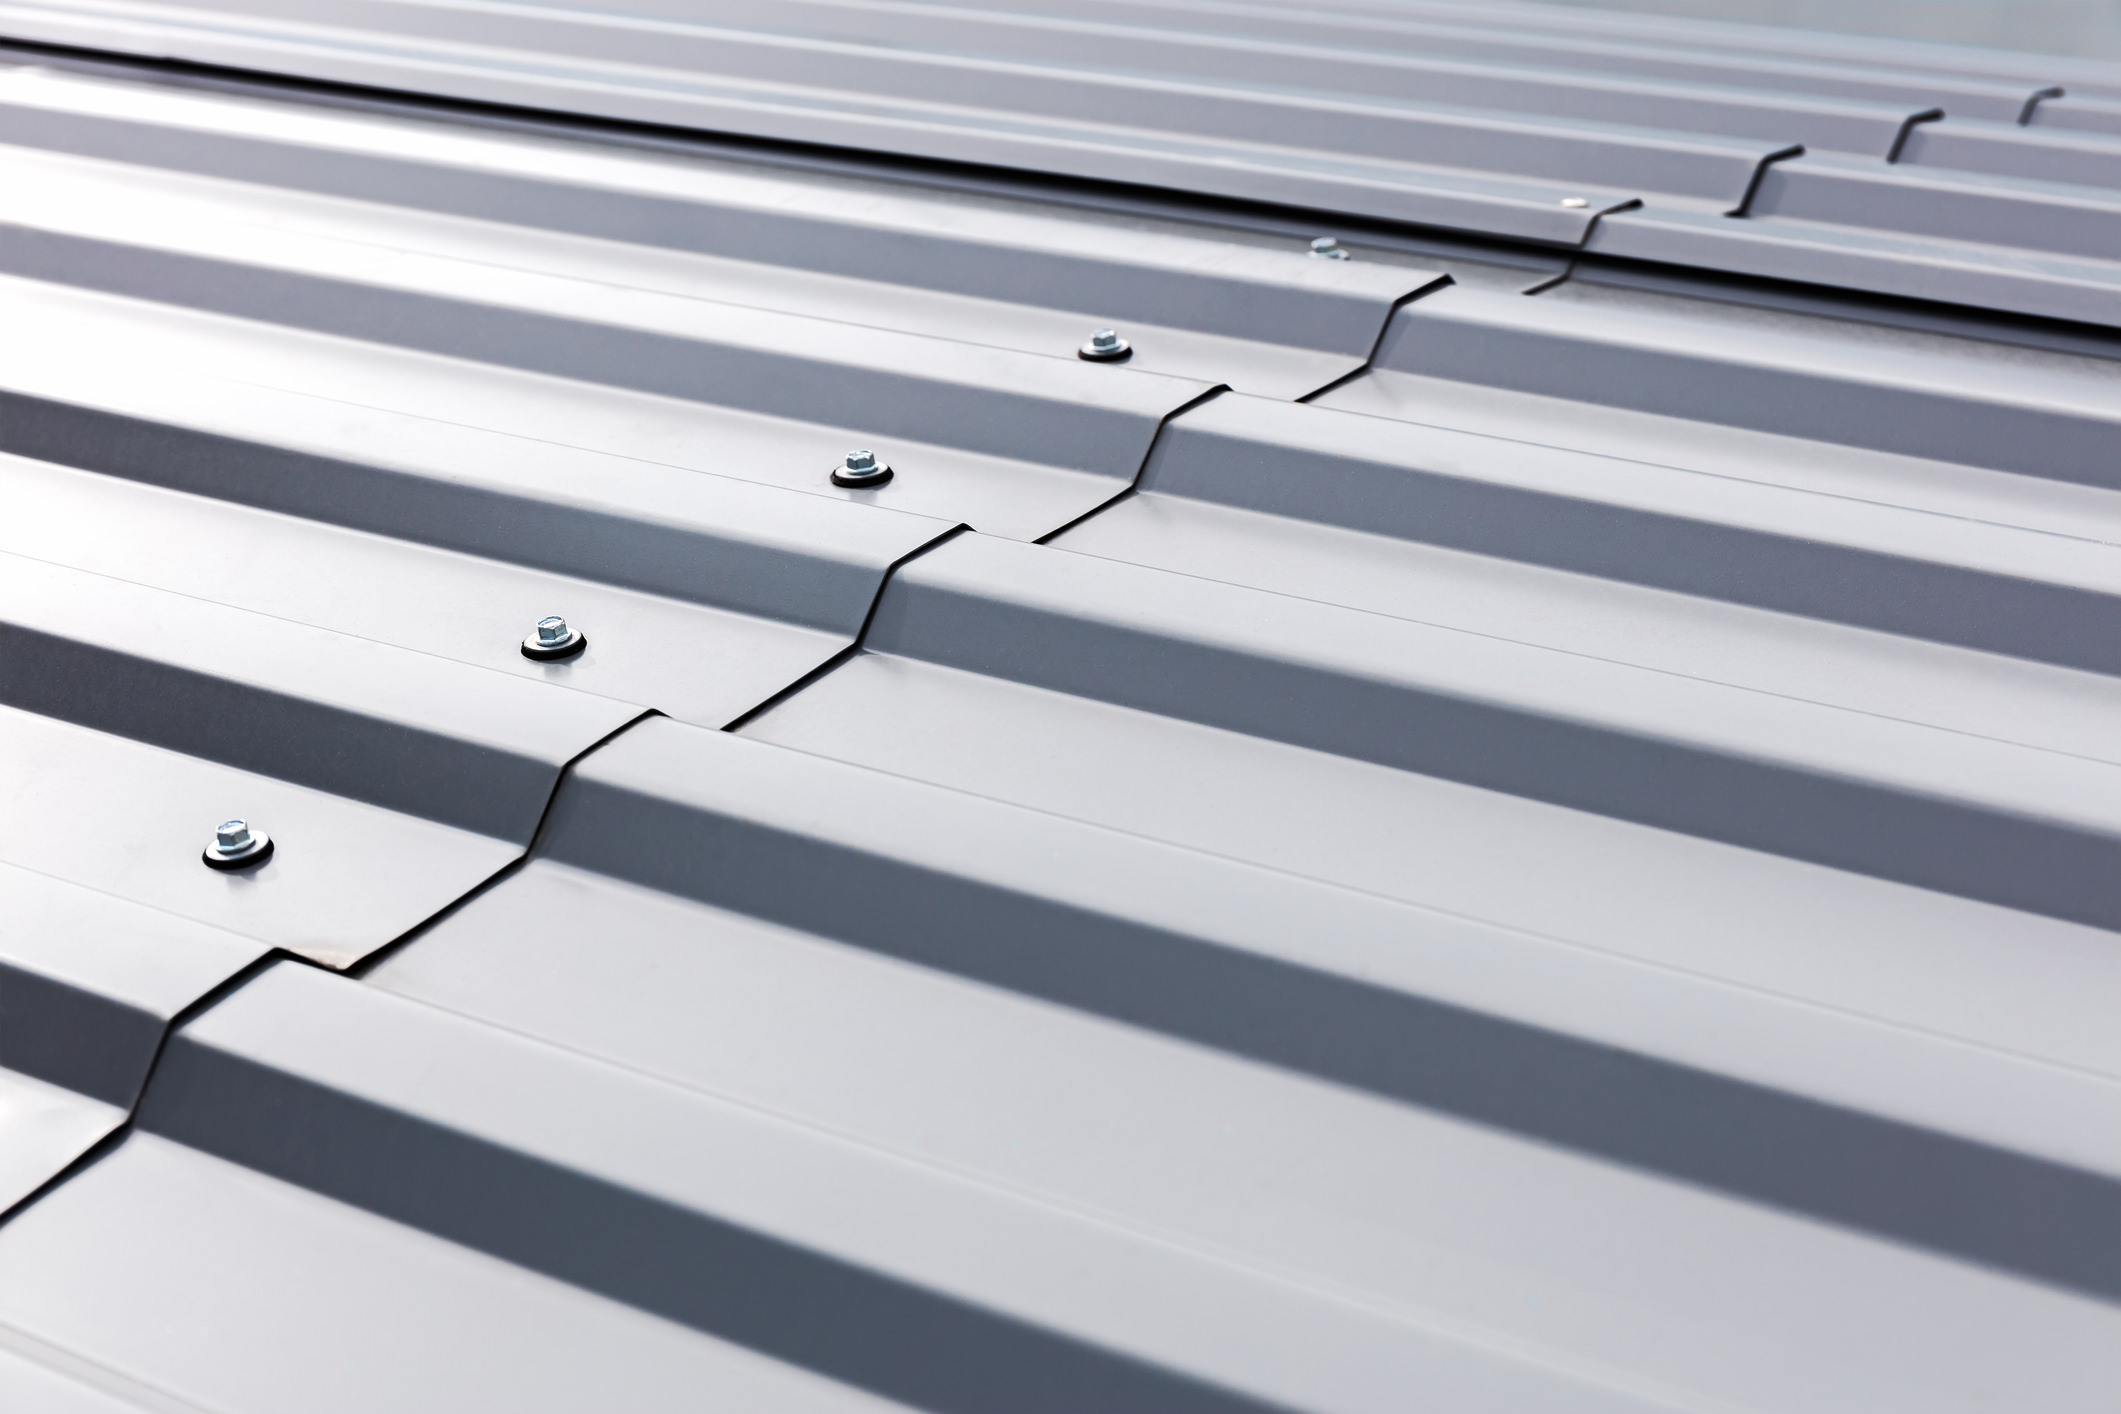 Should I Install Roofing Sheets Myself?